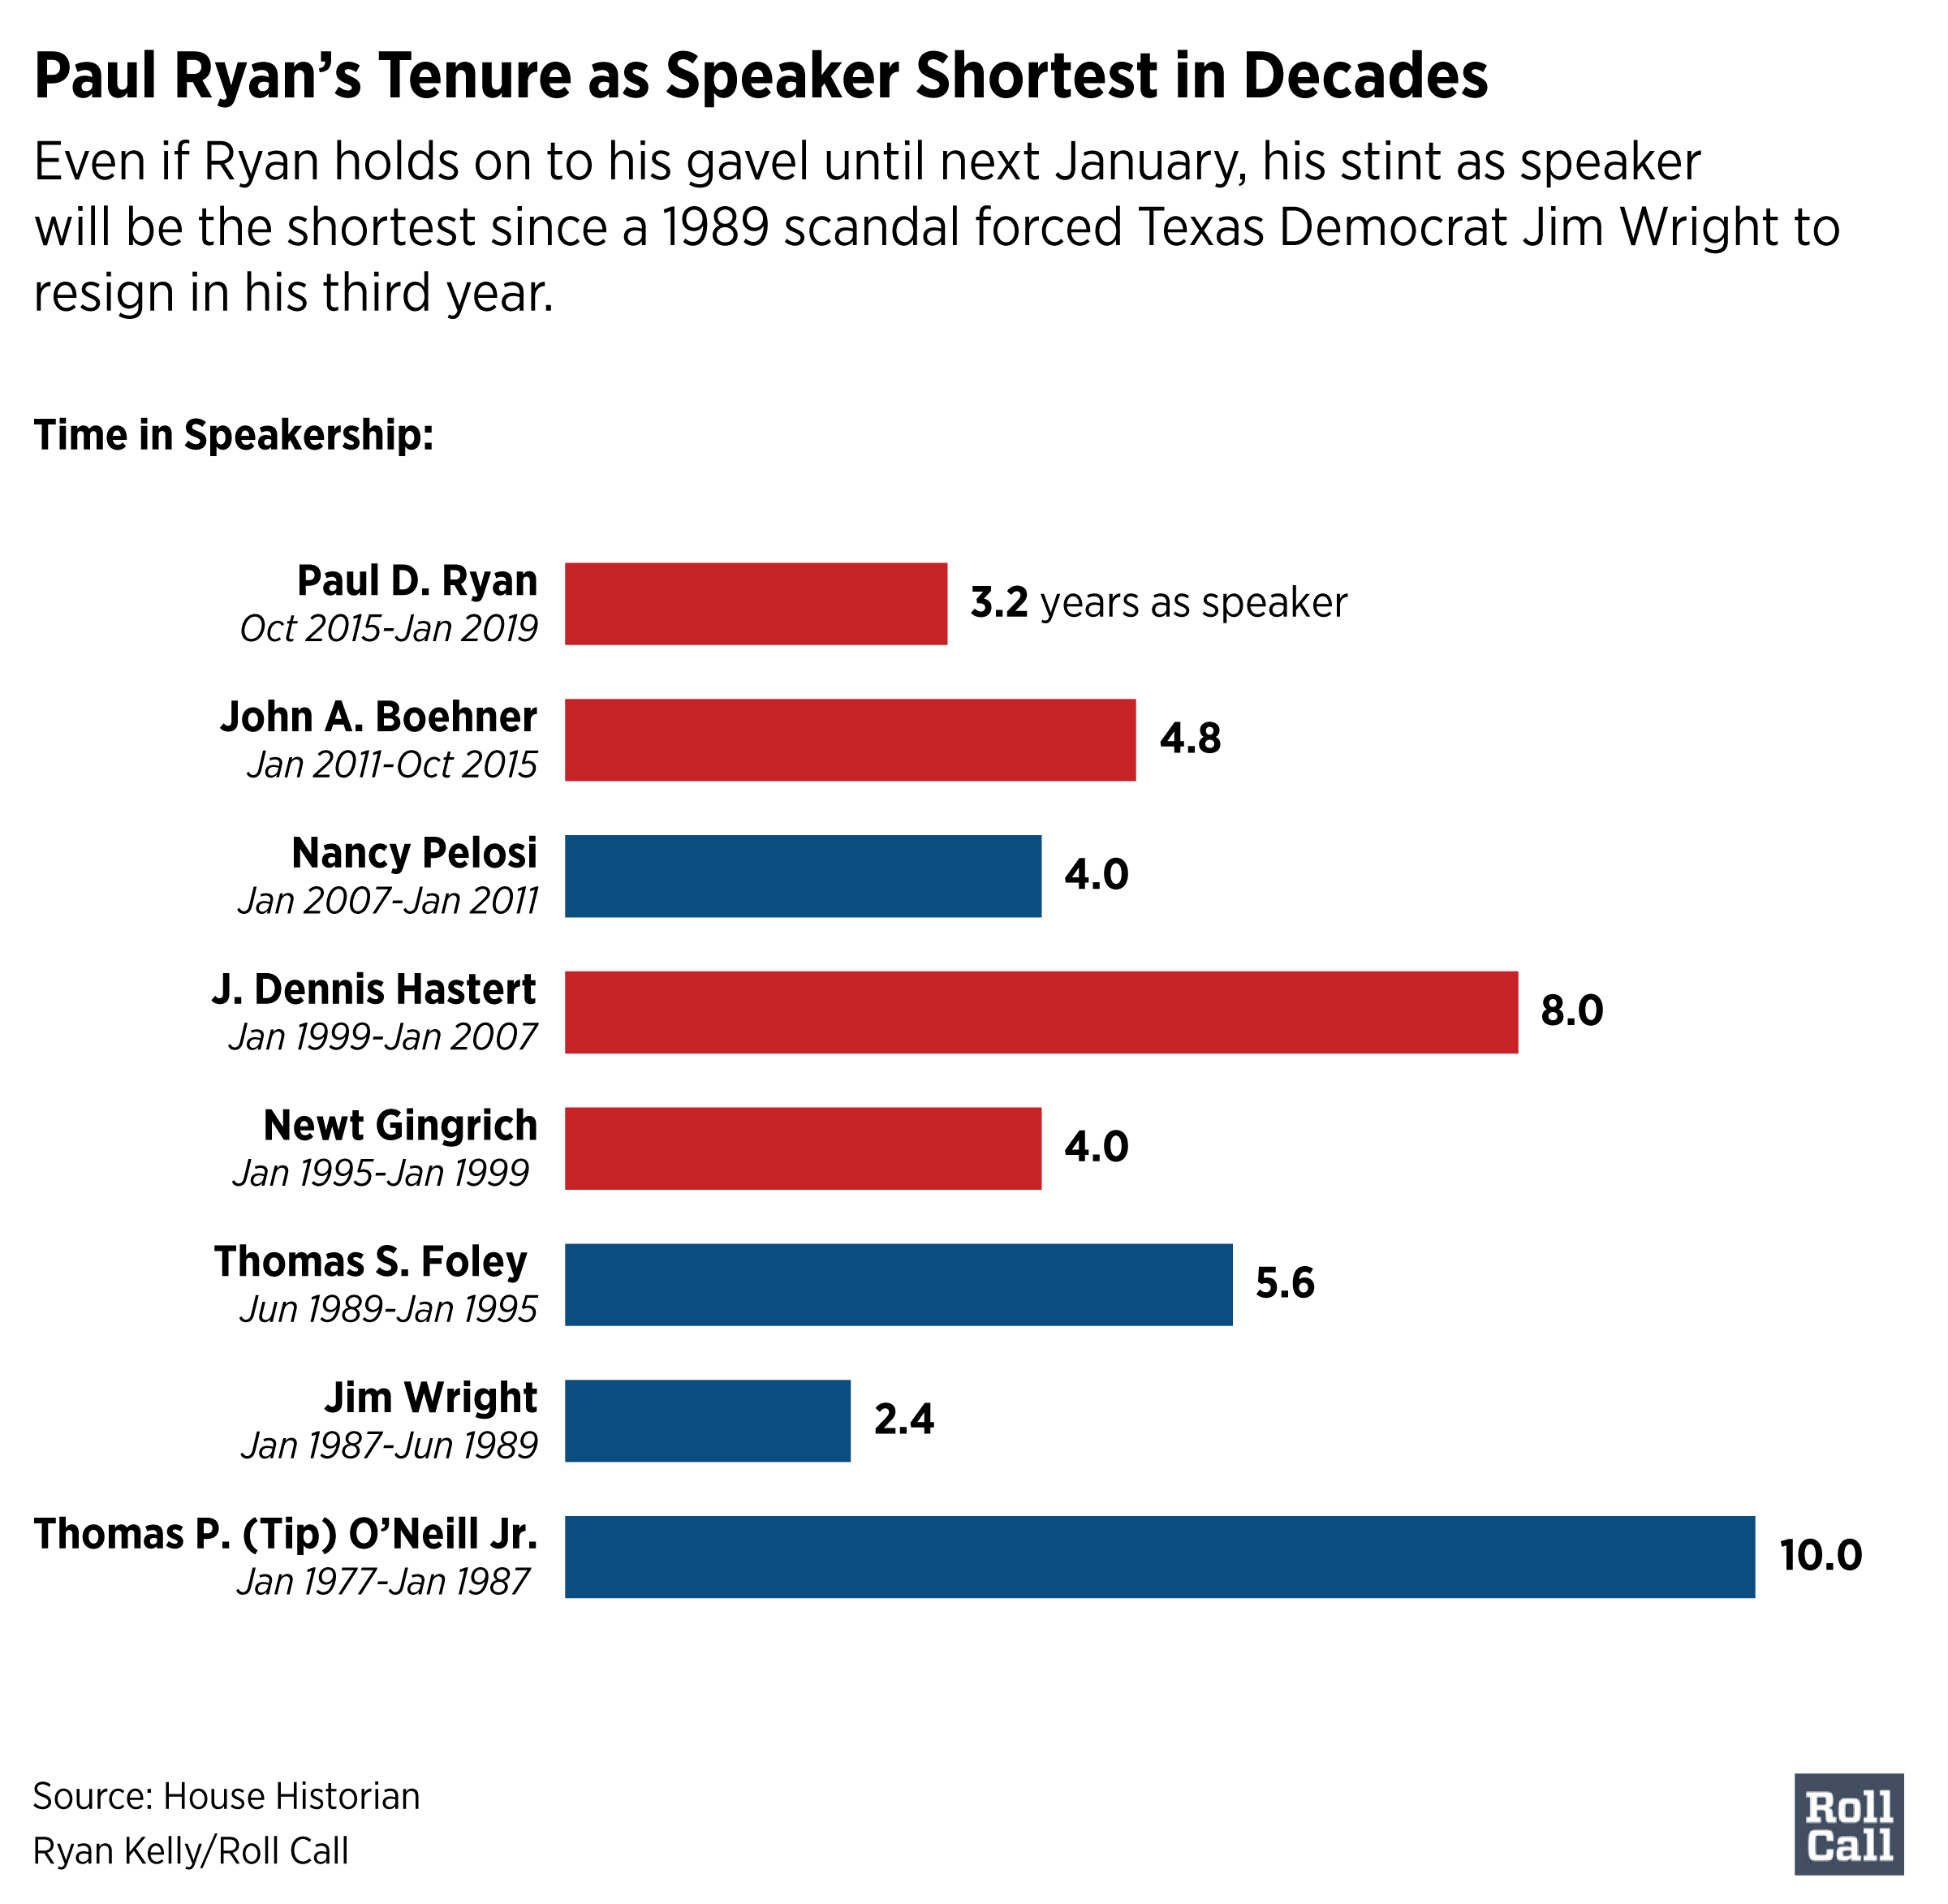 12Ryan-speakertenure